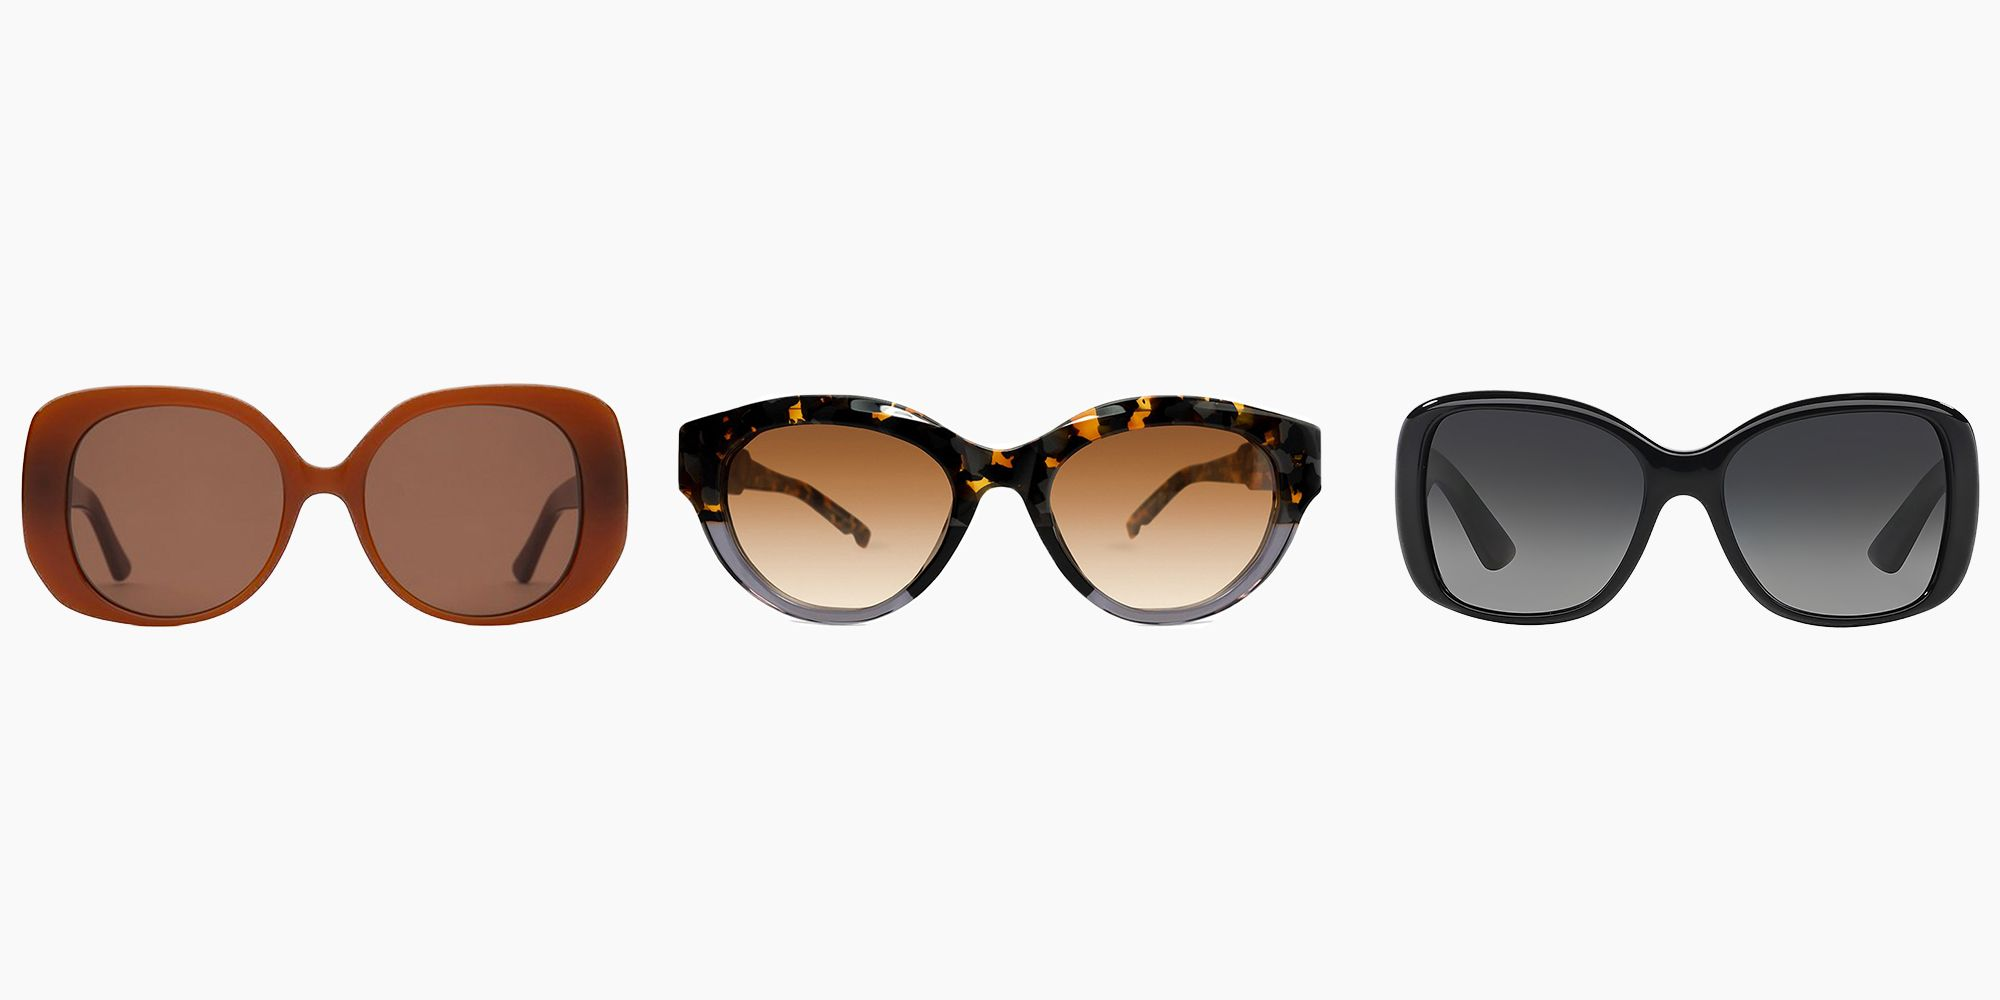 15 Delightfully Boring Sunglasses To Own For Life